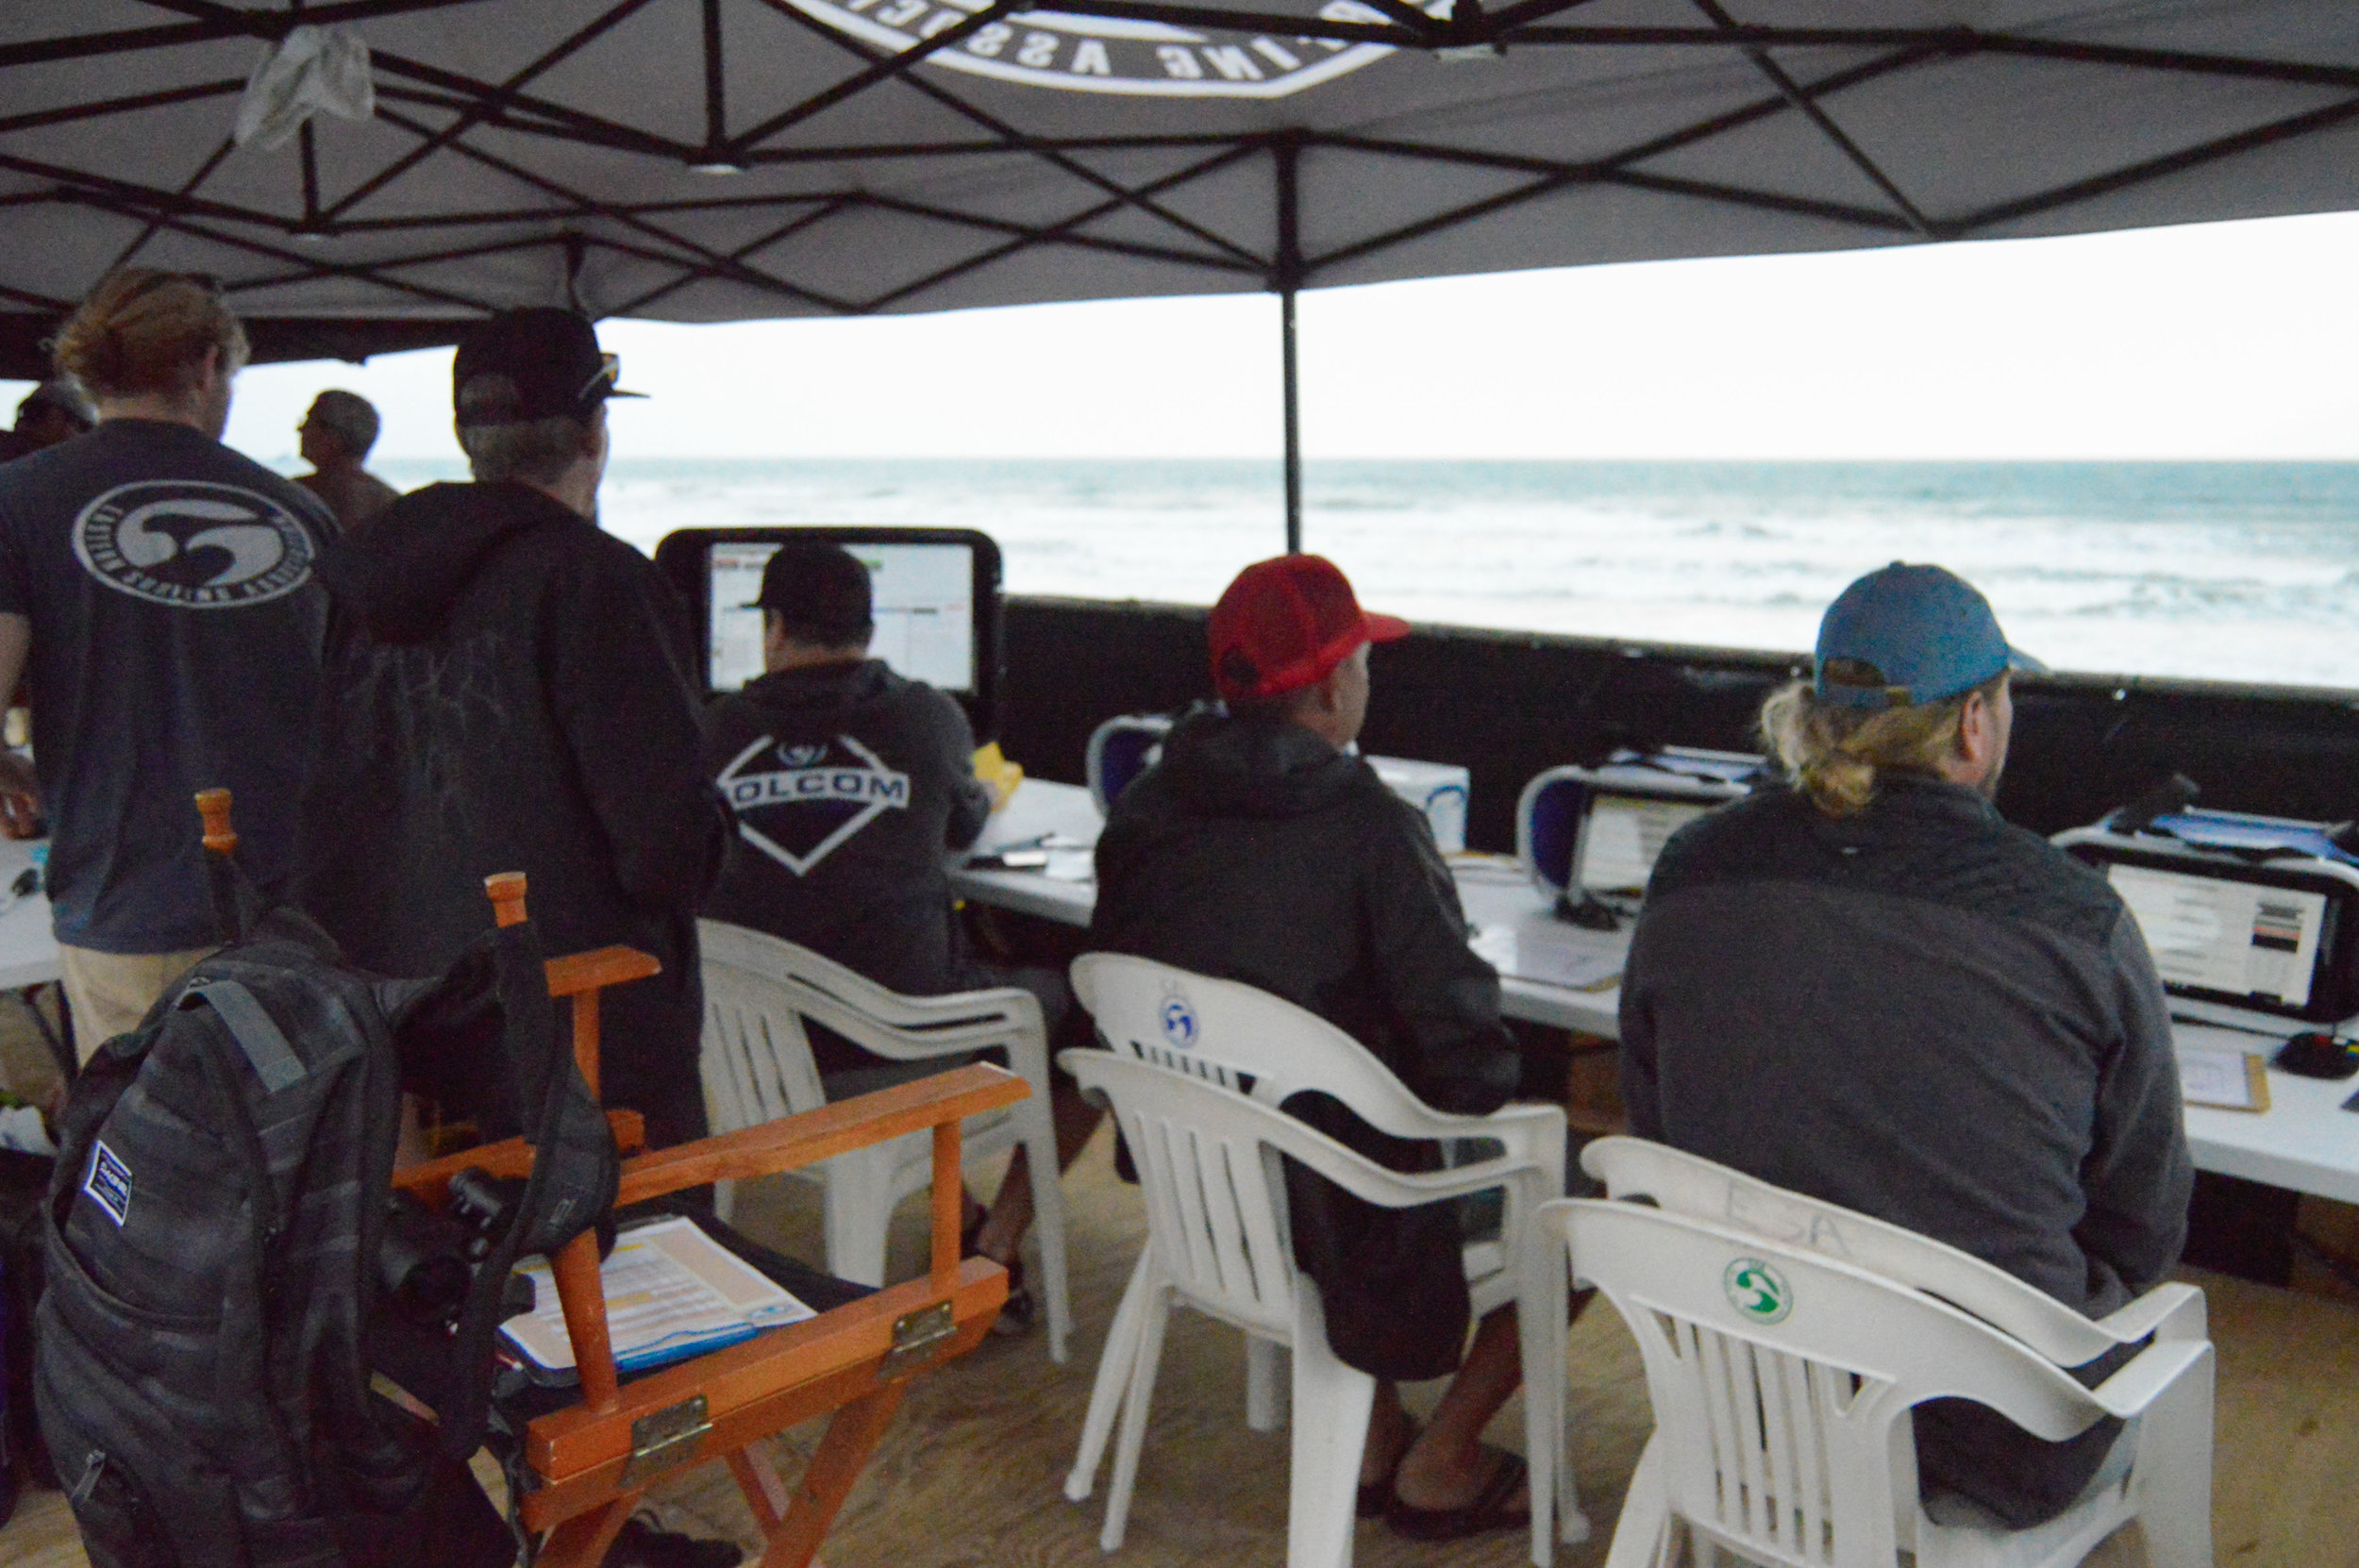 """TIPS FROM THE TOWER    PART 1: QUALITY OVER QUANTITY   By: Brandon Russell  Fresh off the road and back from judging another surf contest (ESA Mid-Atlantic Regionals in Nags Head, NC), I thought it would be a good time to start writing a small series of articles focused on improving heat strategies for competing amatuer surfers. Here's the first installment of """"Tips from the Tower""""... ( read more )"""